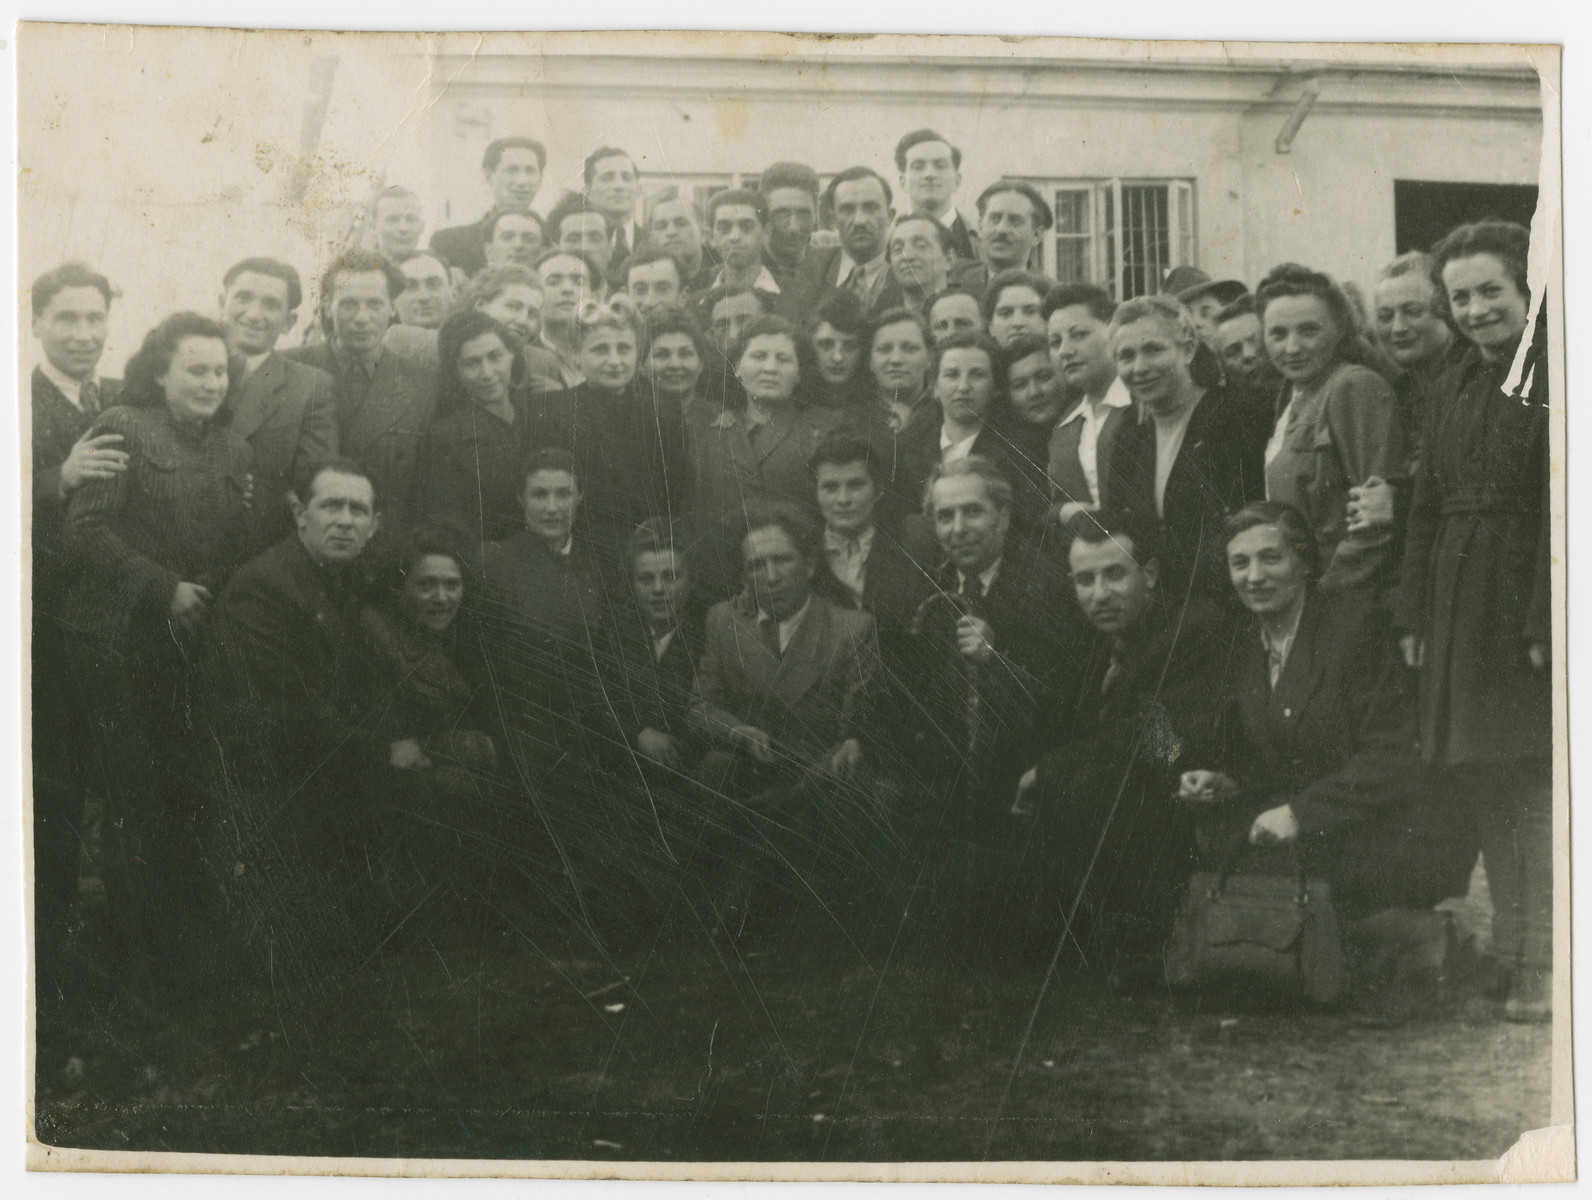 Postwar photograph of survivors from the Kovno and Vilna ghettoes together with the Soviet Jewish author, Ilya Ehrenberg.  Most of those pictured were partisans.  The donor Moshe Magidowitz is in the top, center.  Standing second from the left Shulamita Gelperninie, seated Meir Grinberg and Masha Endlin (third from left).  Also pictured are Naum Endlin (standing 4th from left), Chane Grinbrg (standing 6th from left), Sara Gordon, Sima Bloch, Alte Tepper, Chane Smuileva (under Sima Bloch), Pesach Shattner, Levin, Faitelson (second from right), Rochele Lifshitz, Opnitzki, Sara Ginaite (5th from left partially obscured), Lova Sher (middle),  Meir Yellin (top row, third from right), Pesach Wolbe, Mira Wainer, Moishe Rubinson, and Dovid Markovsky.